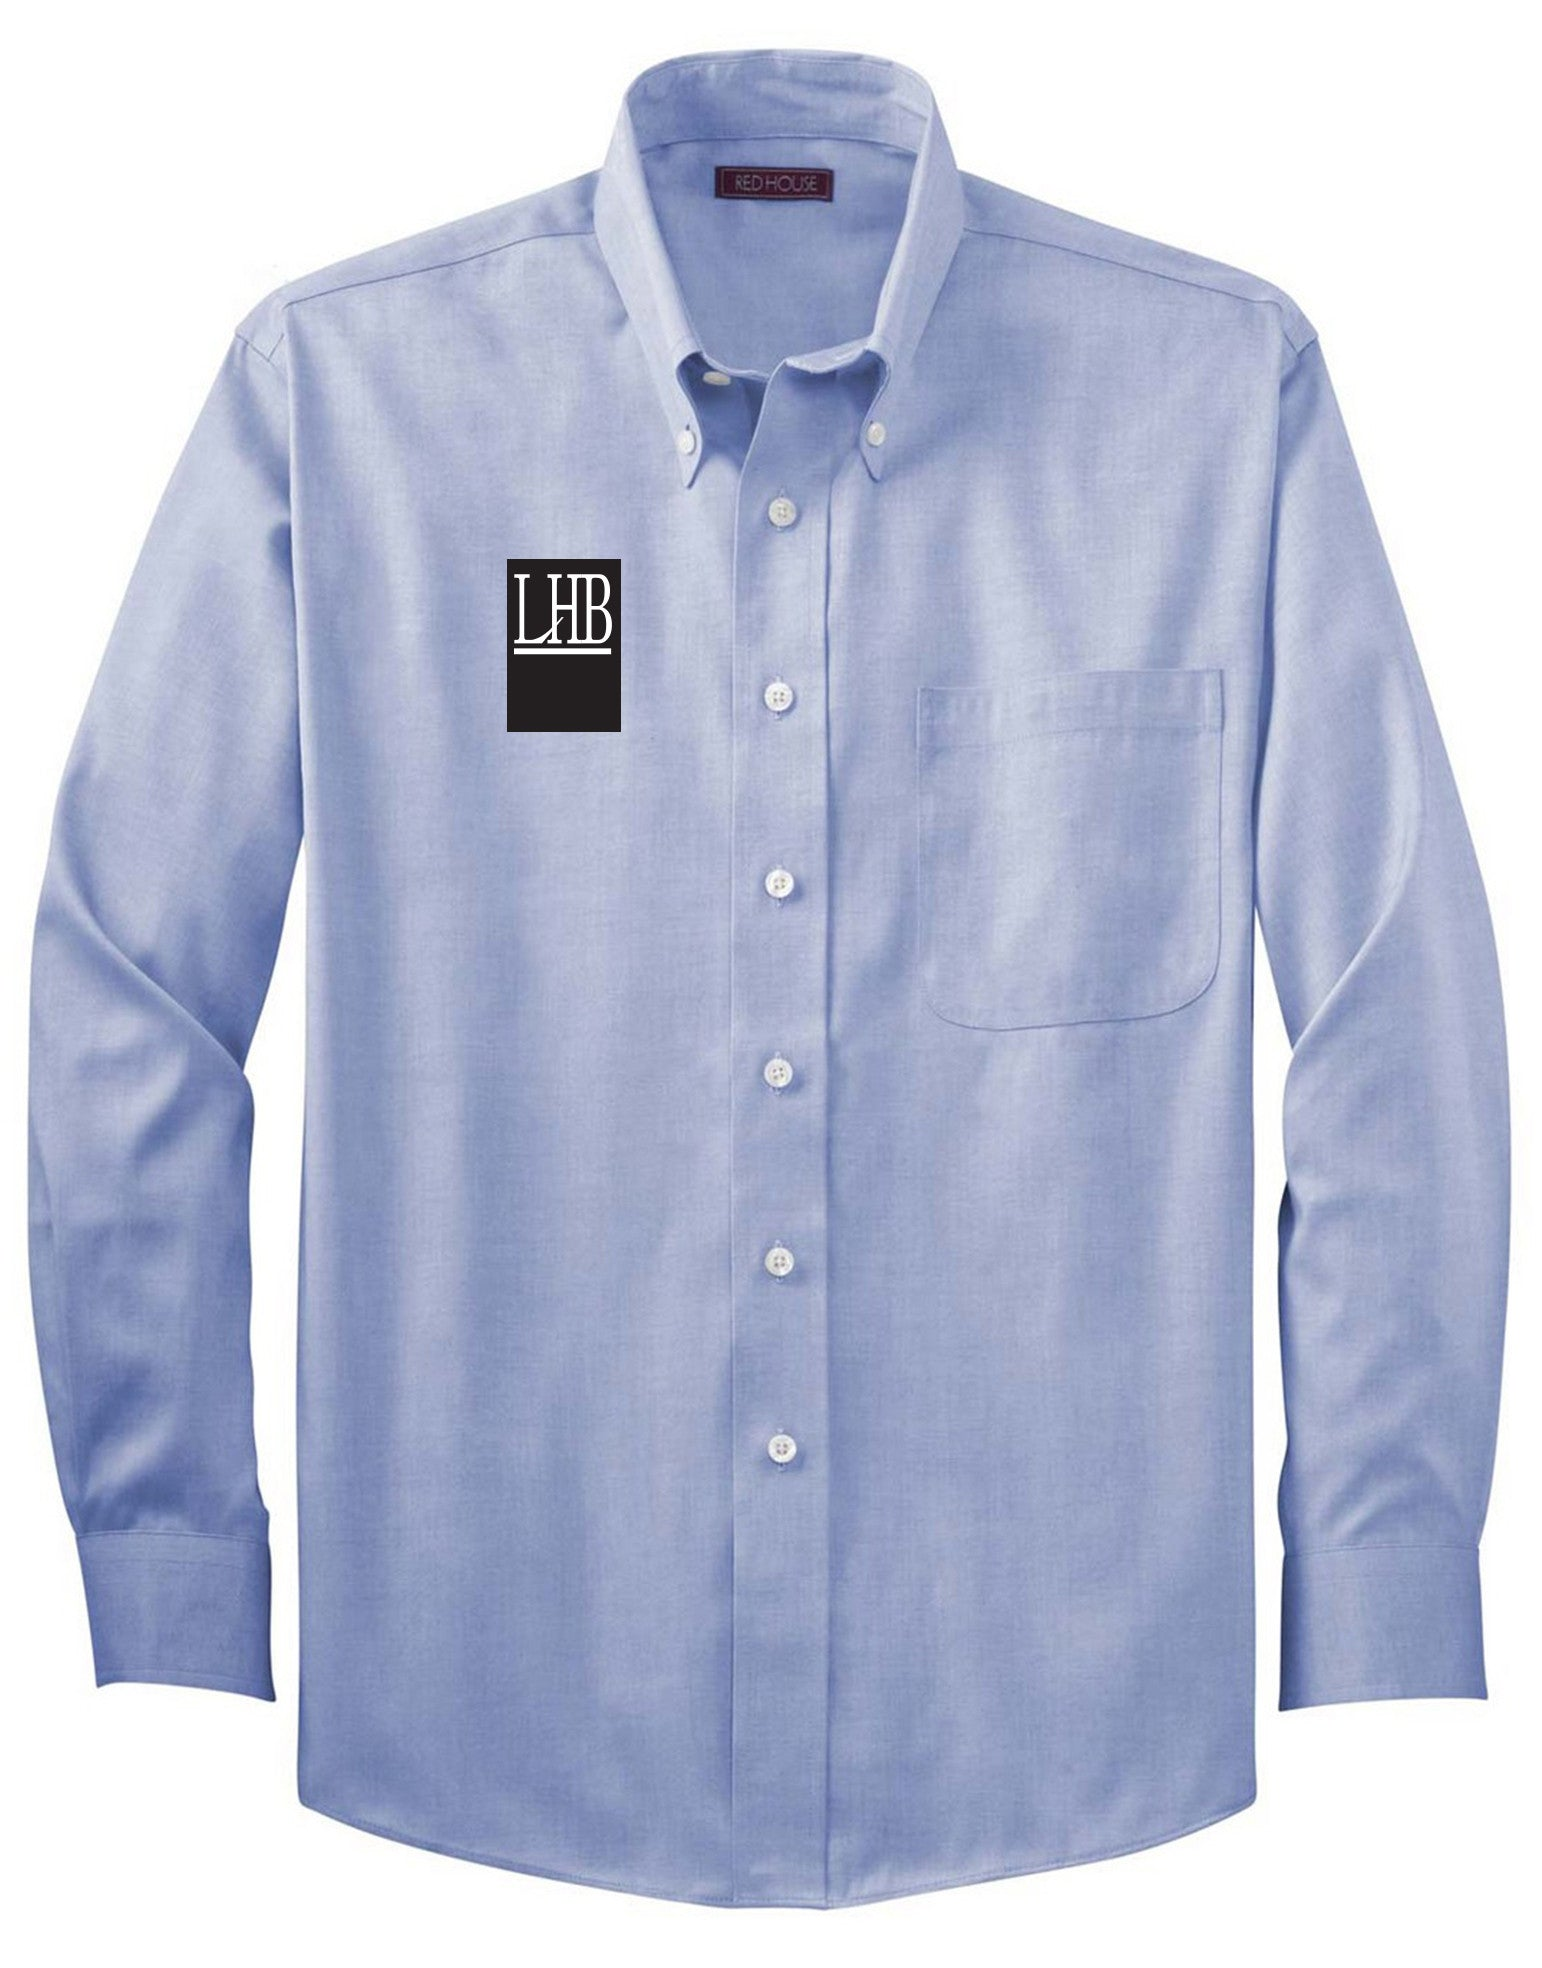 Red House® - Non-Iron Pinpoint Oxford Shirt - Men's - #RH24